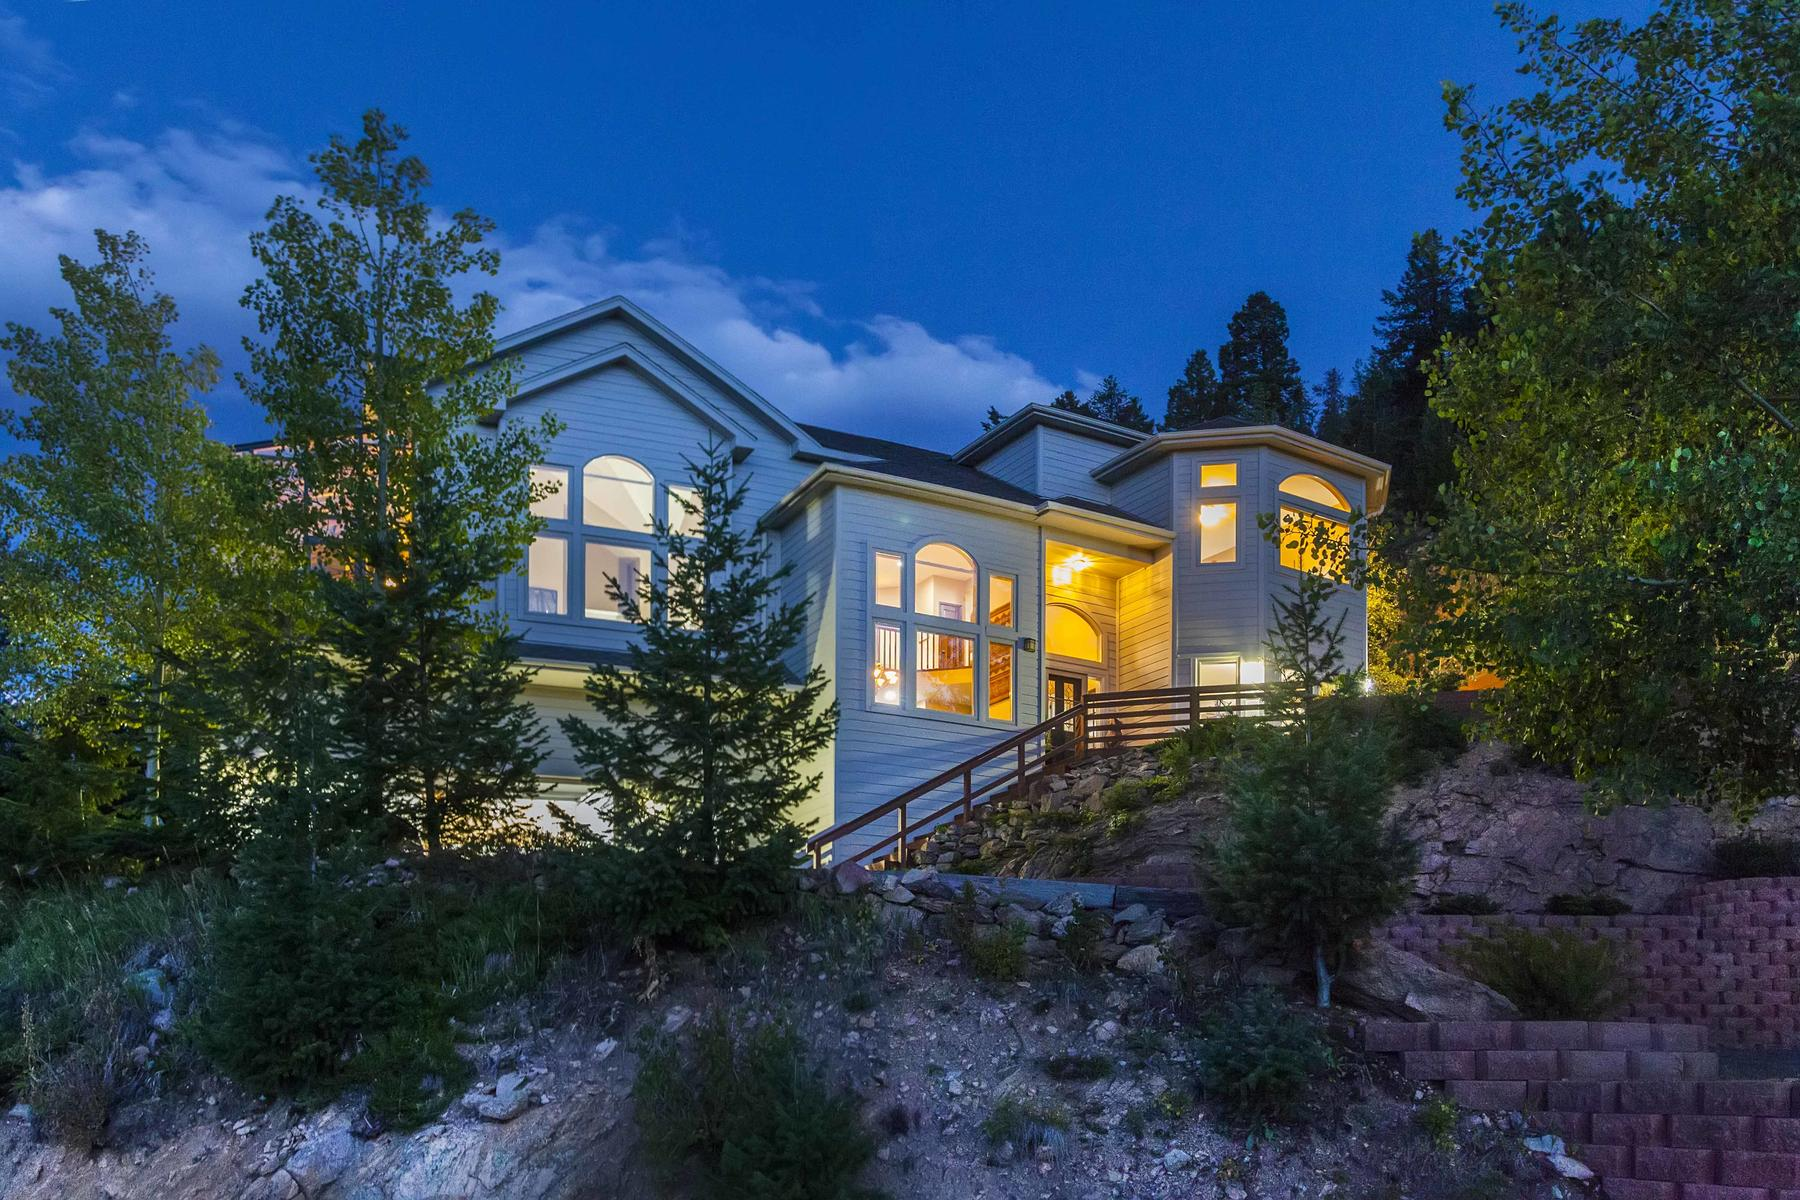 Single Family Homes for Active at 6798 Berry Bush Lane Evergreen, Colorado 80439 United States